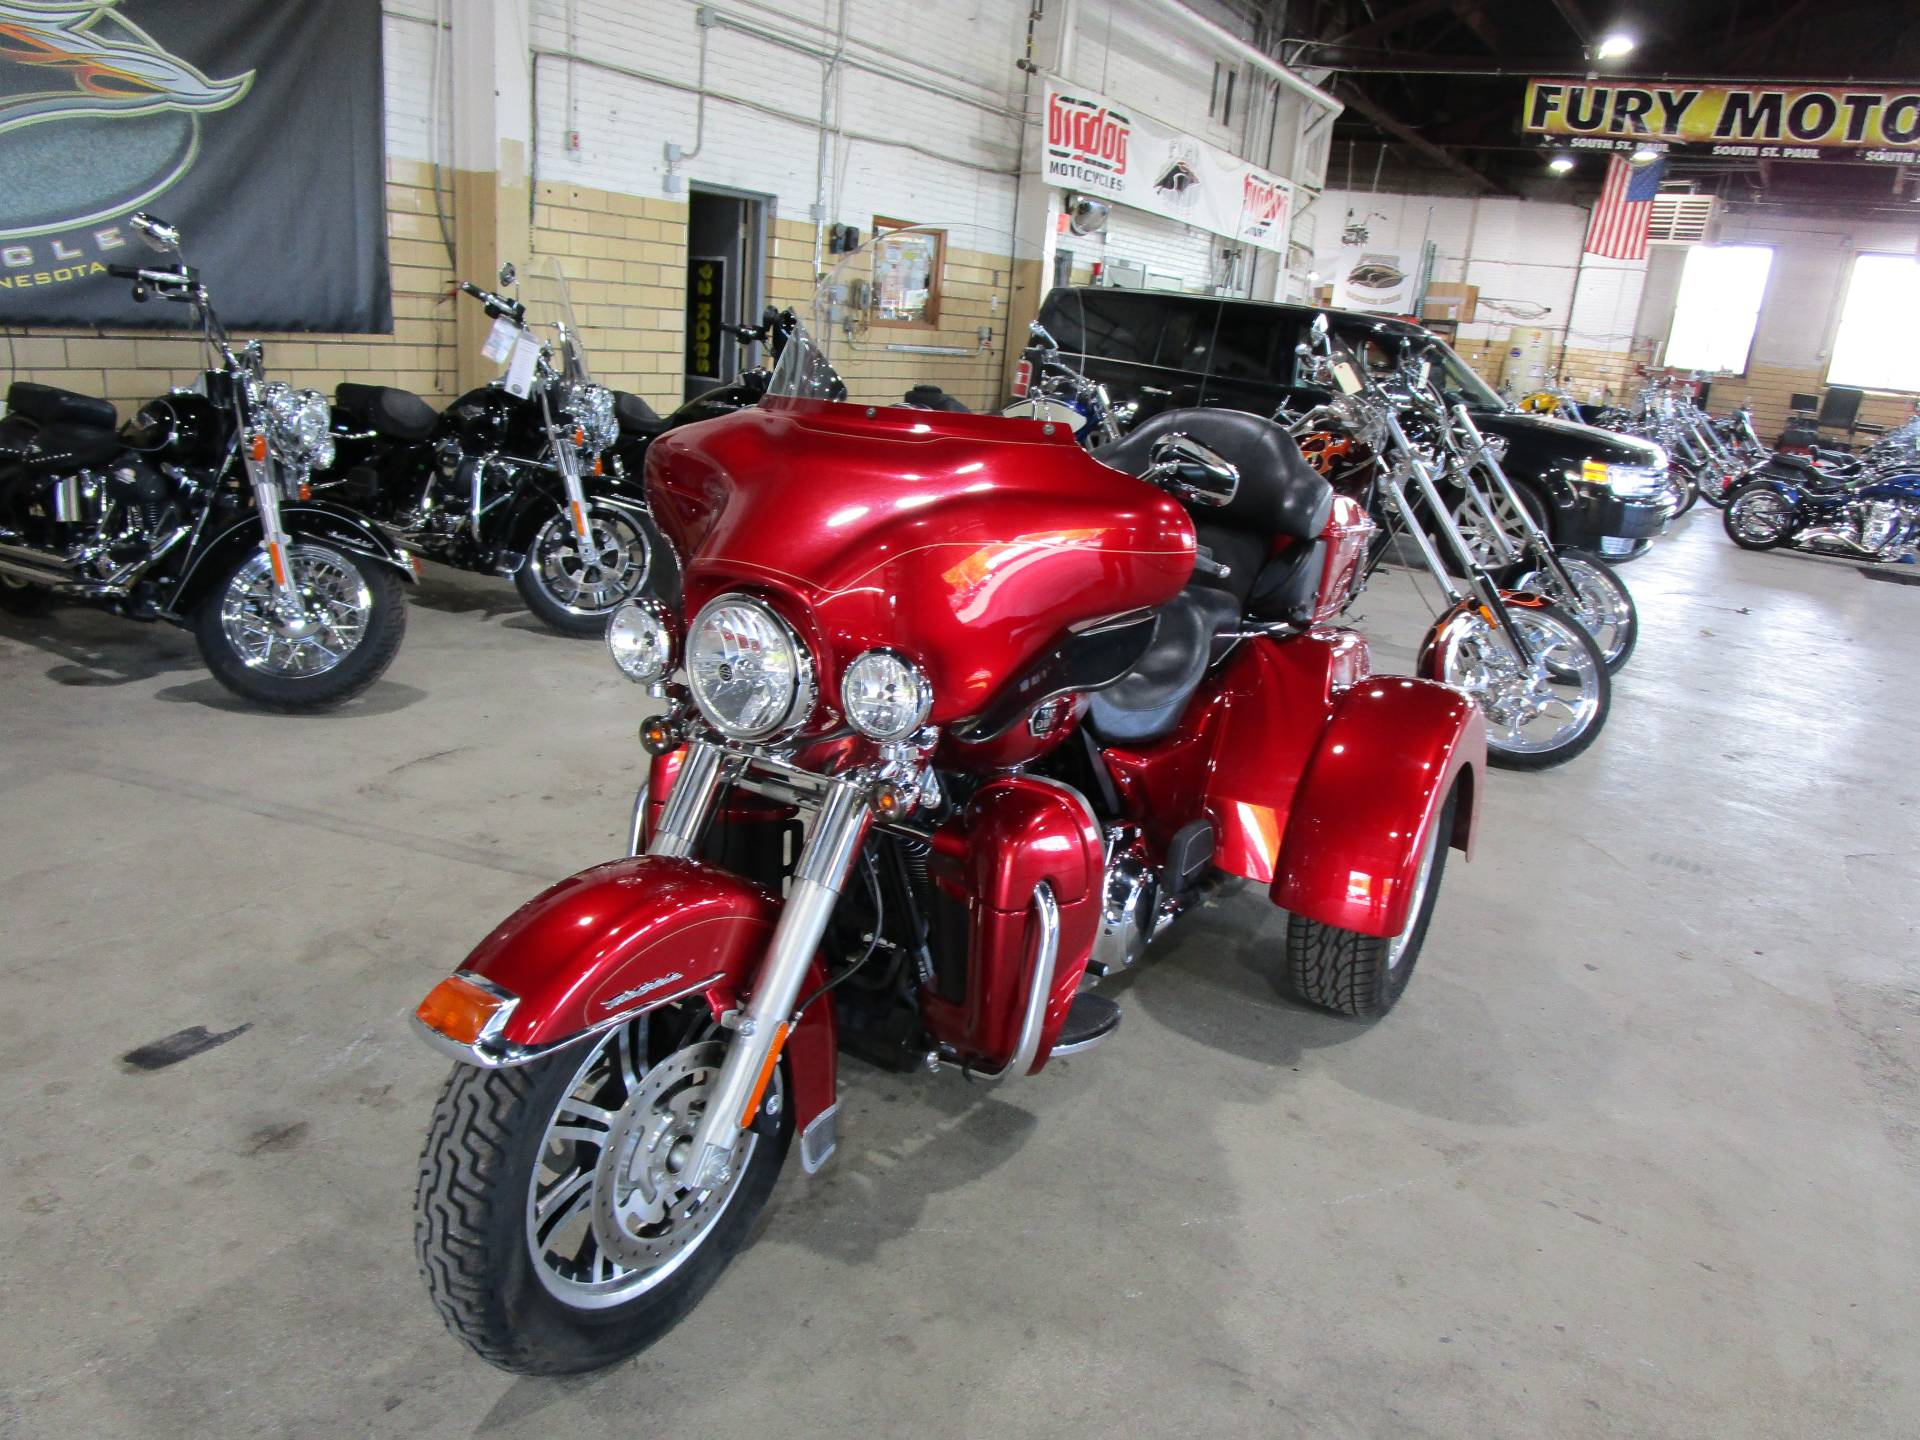 2013 Harley-Davidson FLHTCUTG TRI GLIDE in South Saint Paul, Minnesota - Photo 12